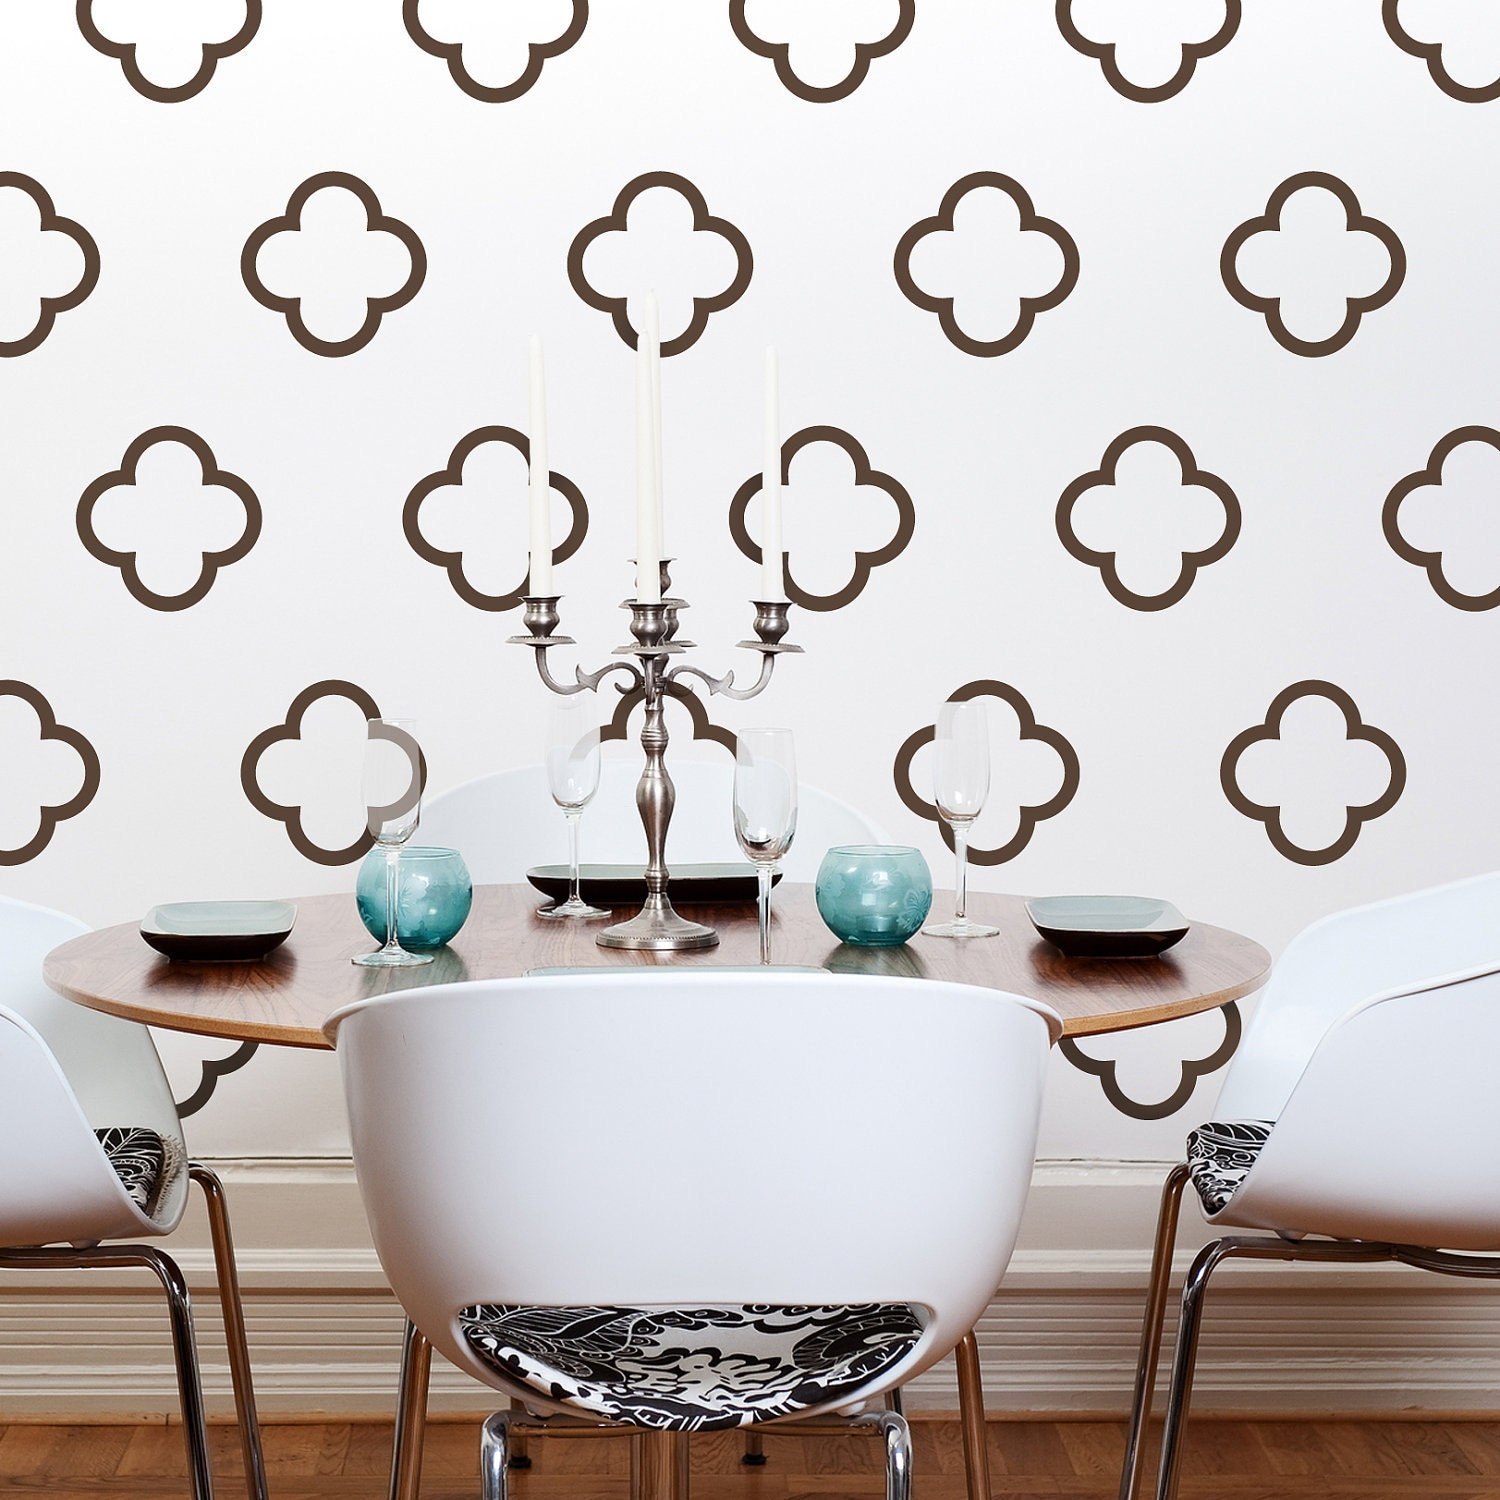 Moroccan quatrefoil vinyl wall decals moroccan bubbles 30 for Wallpaper on walls home decor furnishings